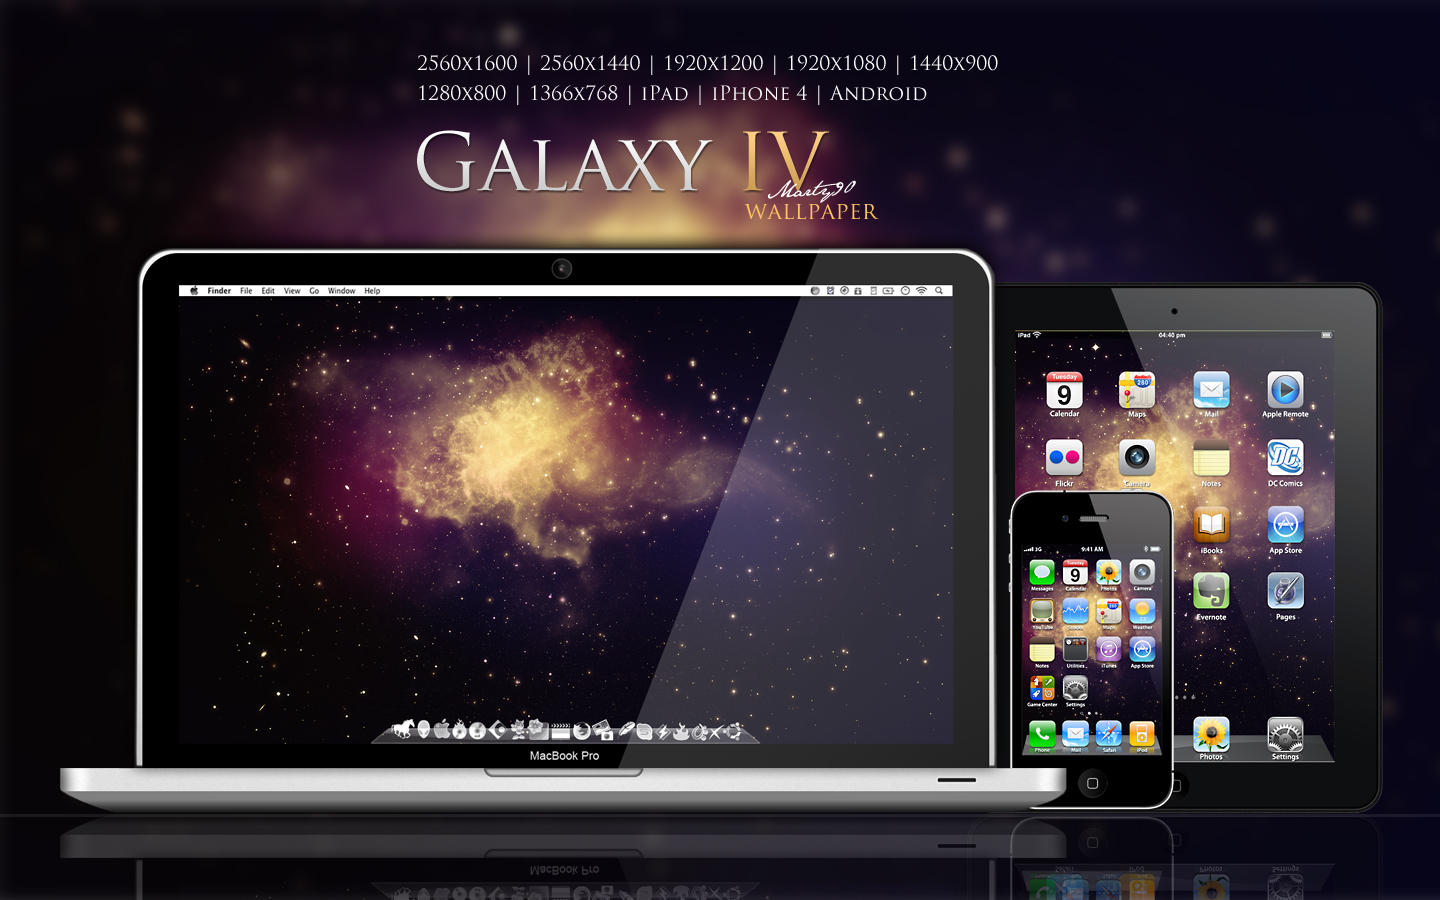 Galaxy IV Wallpaper by Martz90